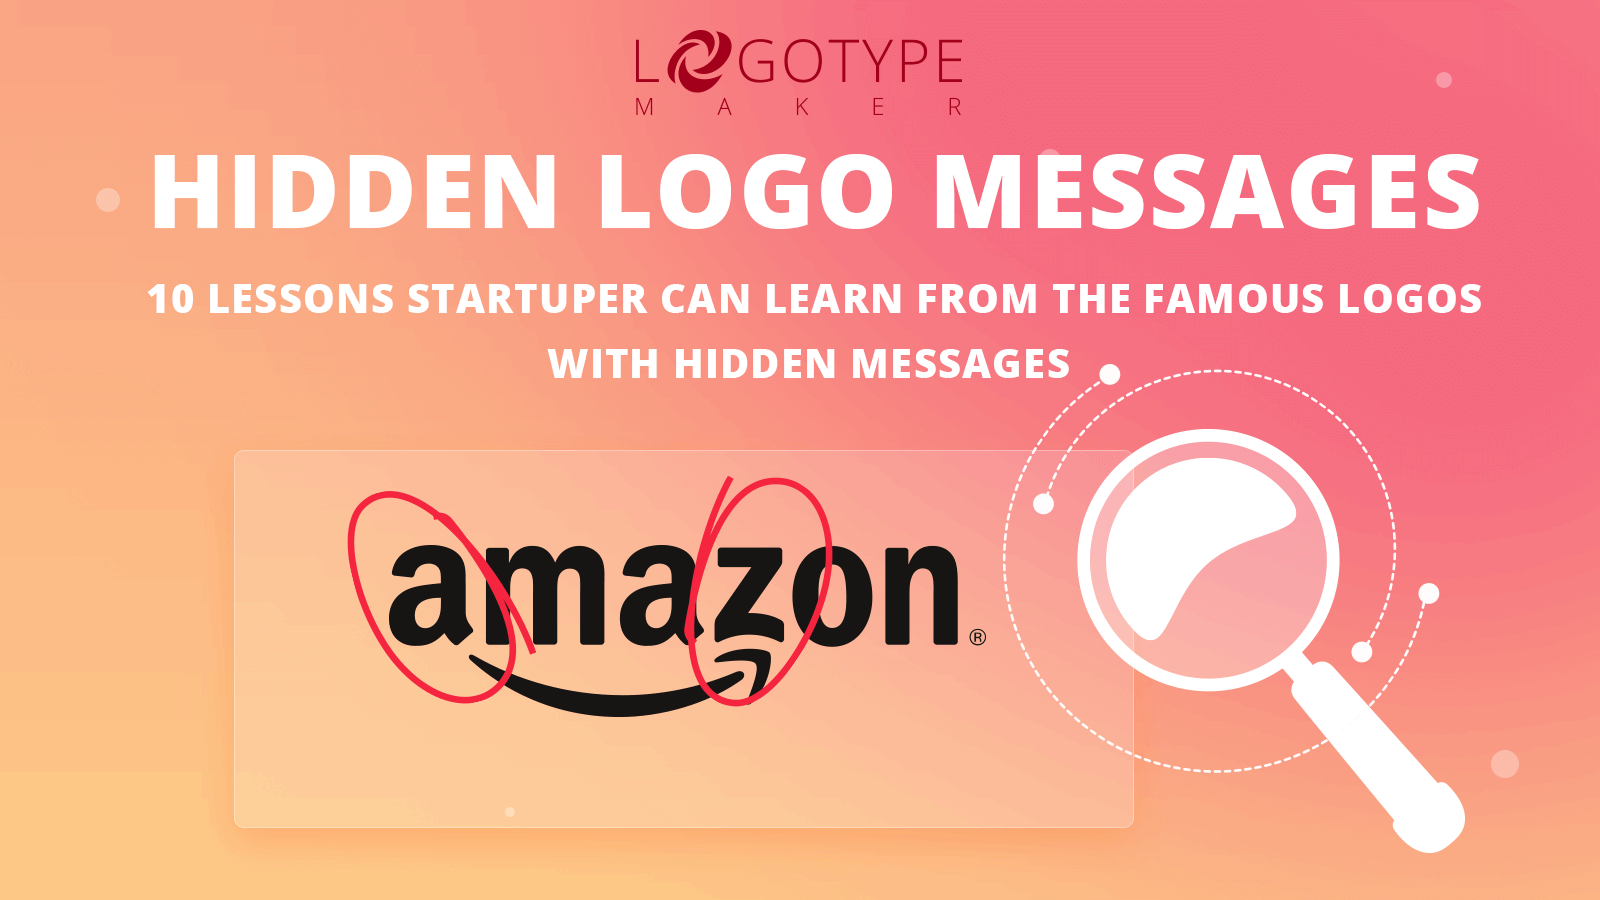 The Famous Logos With Hidden Messages